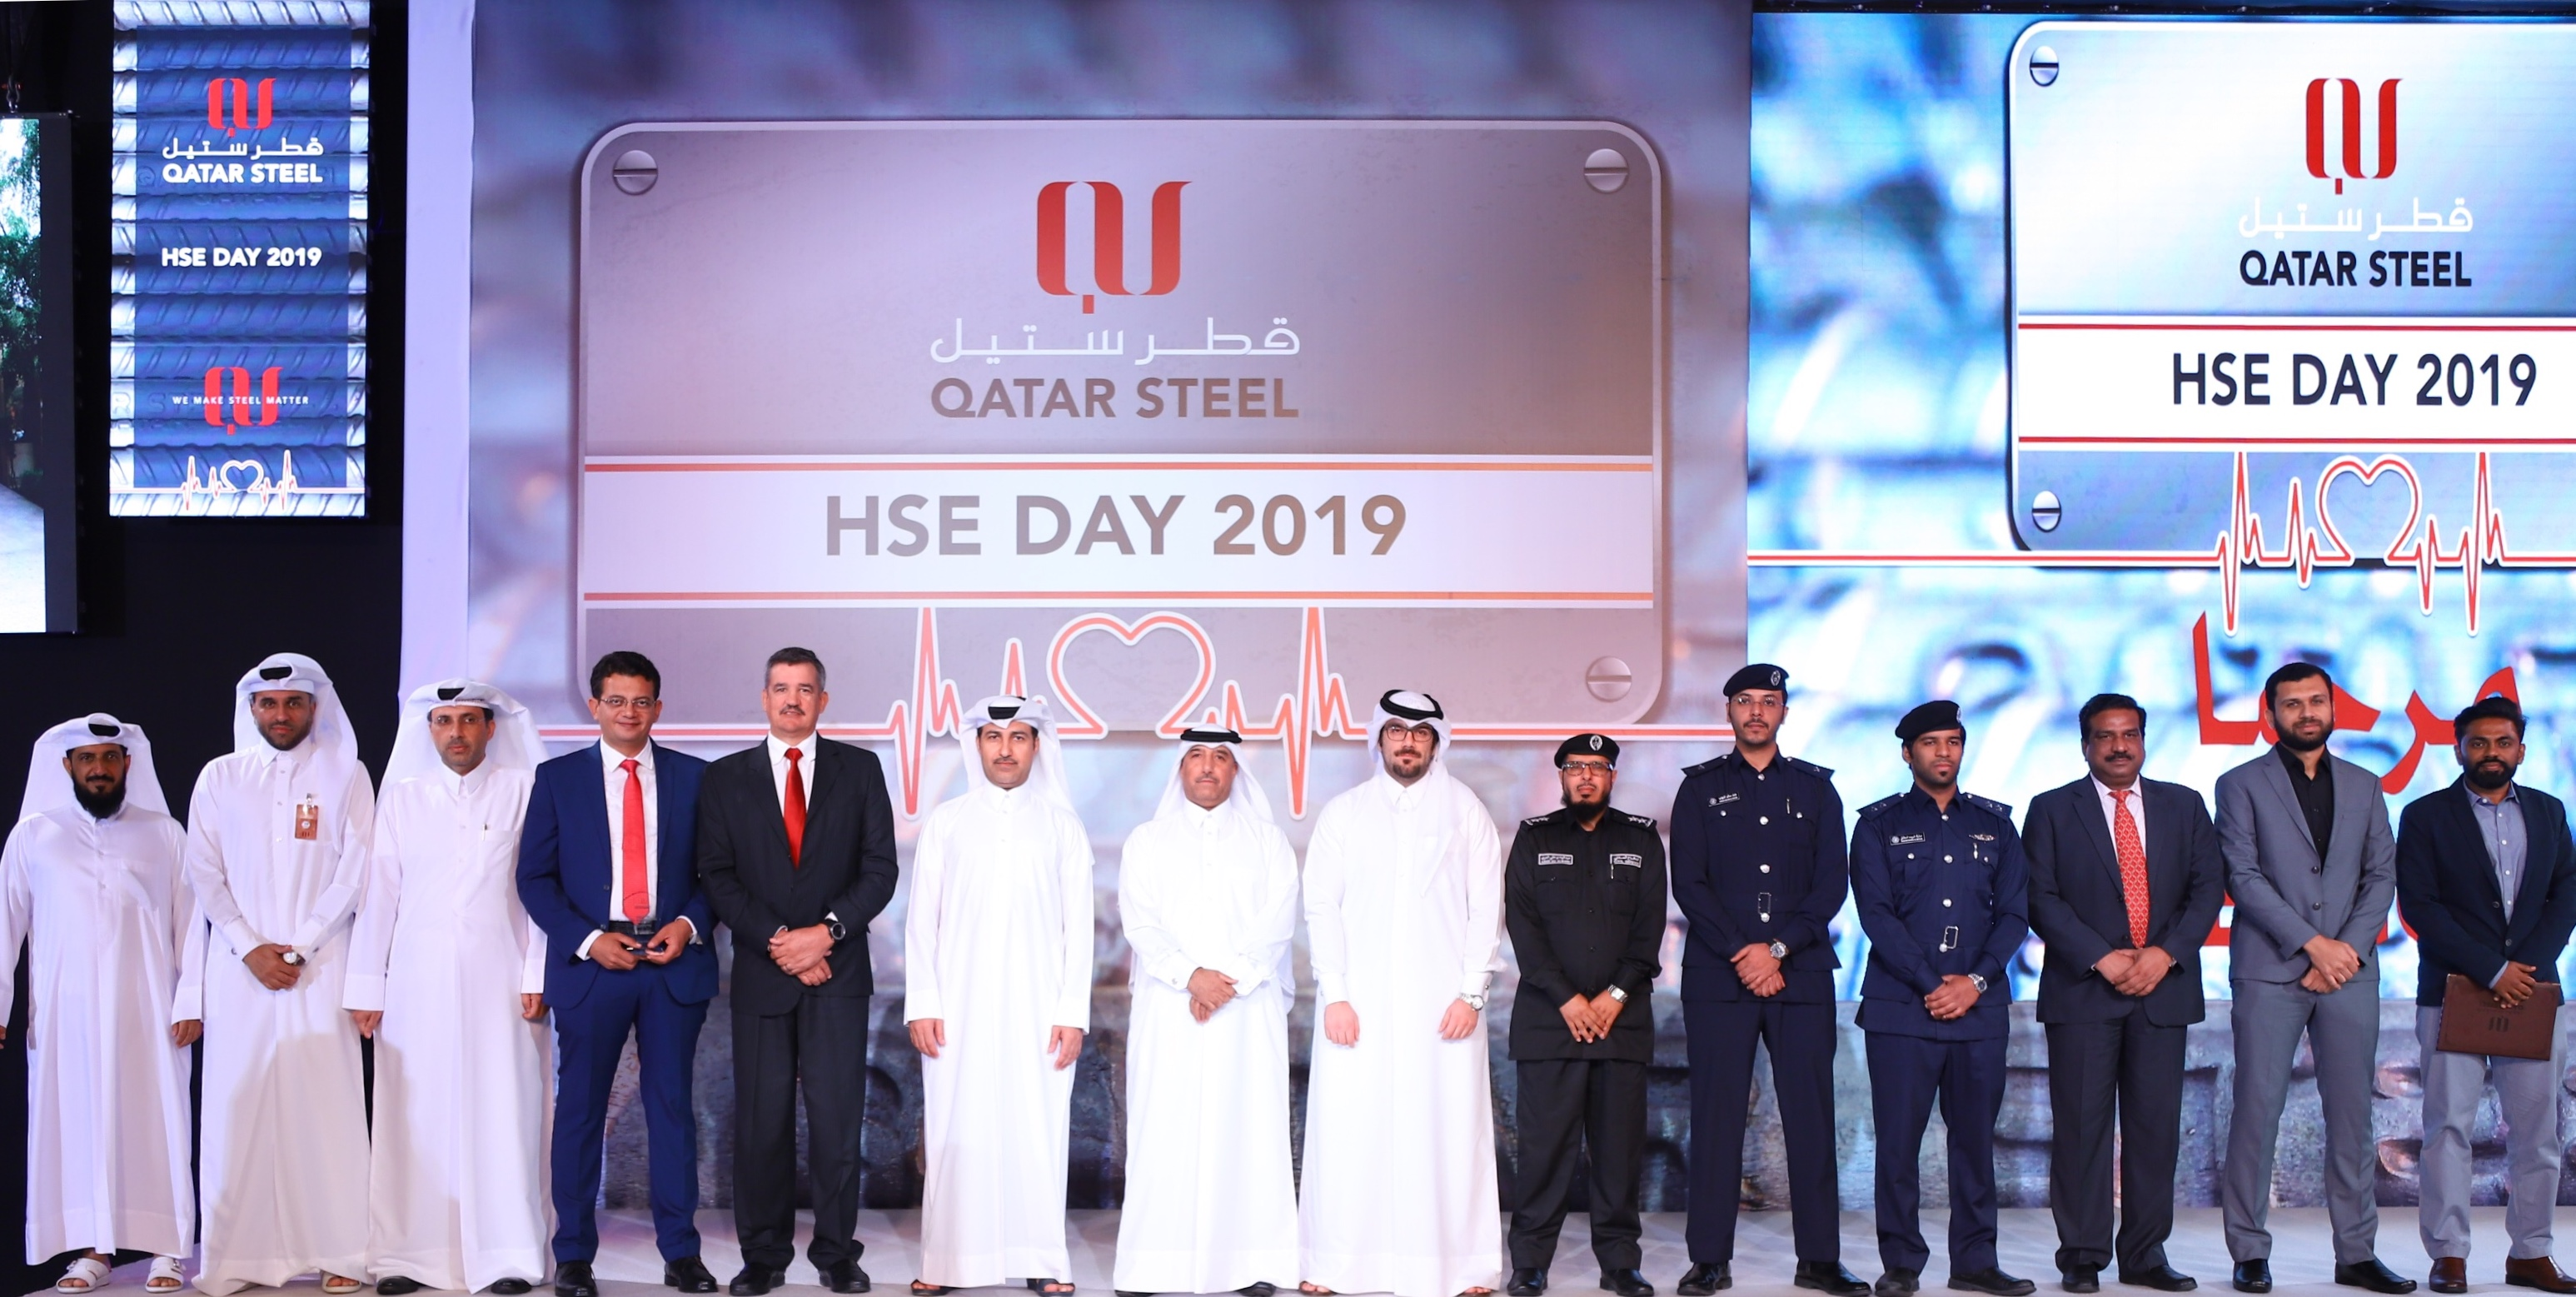 Qatar Steel celebrates Occupational Health and Safety Day